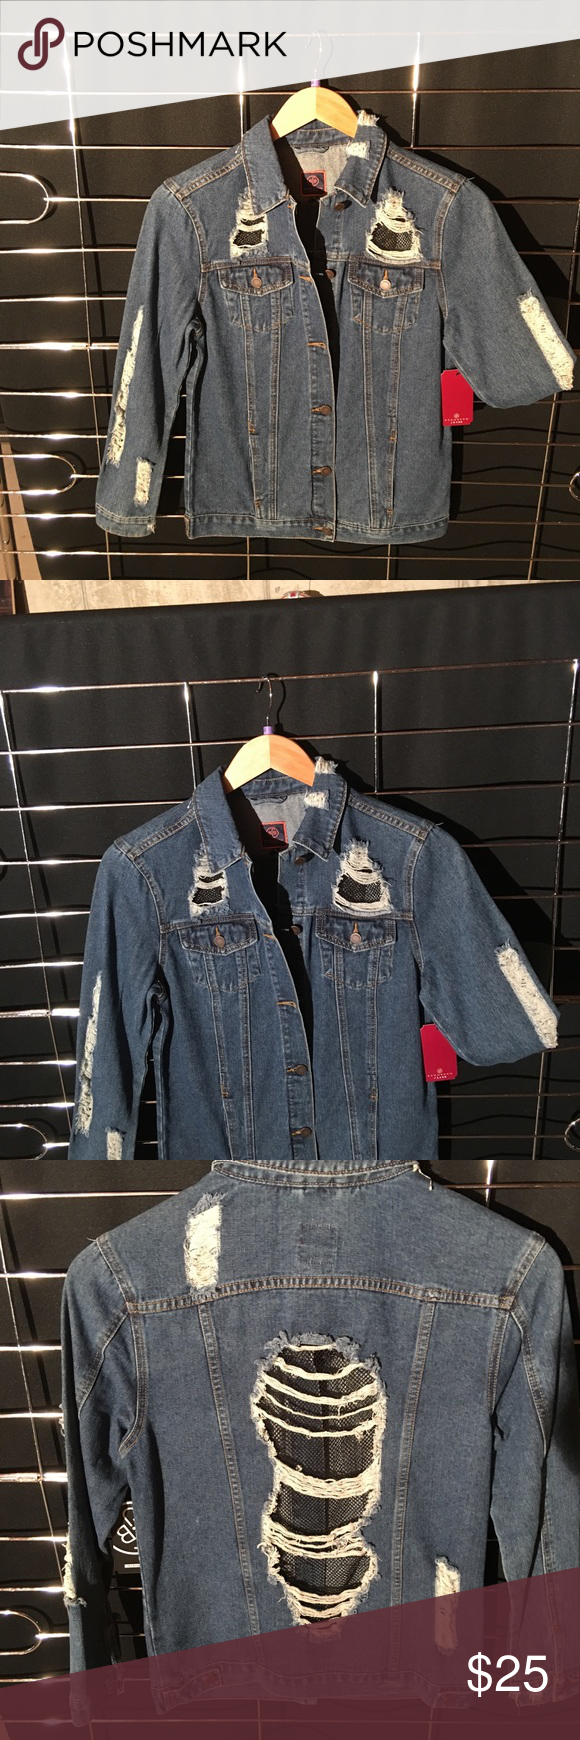 Nwt Boom Boom Jeans Deconstructed Jean Jacket Nwt Deconstructed Jean Jacket By Boom Boom Size S See Pictures For De Boom Boom Jeans Clothes Design Fashion [ 1740 x 580 Pixel ]